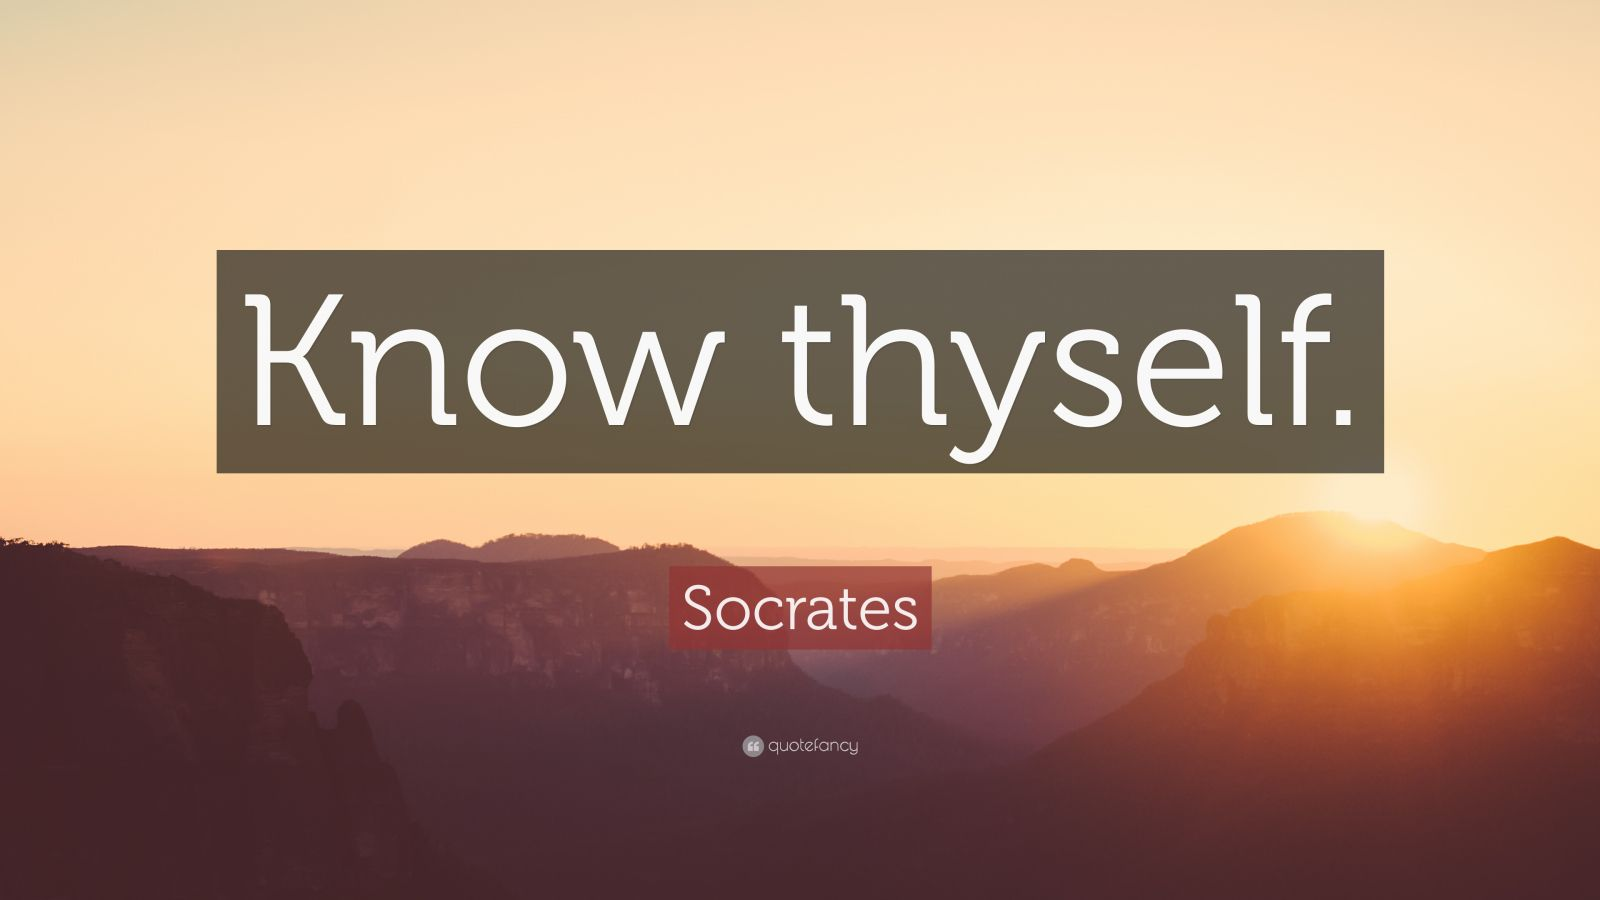 Motivational Life Quotes Wallpapers Socrates Quote Know Thyself 32 Wallpapers Quotefancy